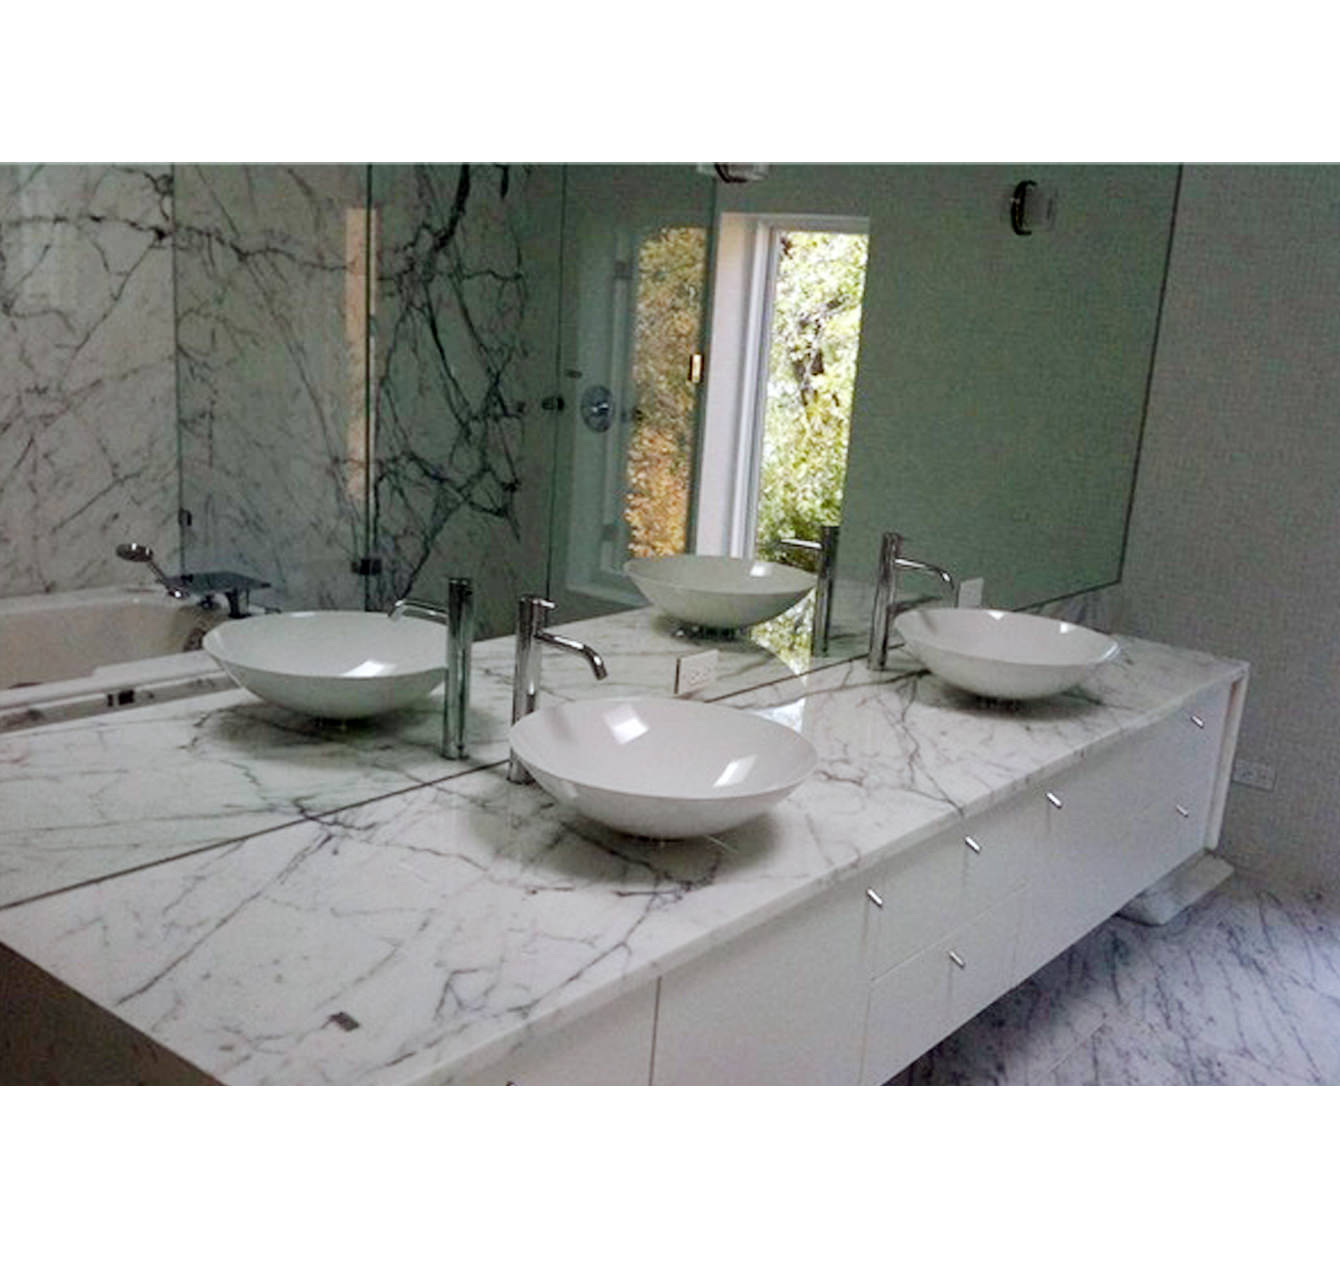 Bianco Carrara Gioia - Stone QuestStone Quest on carrera marble bathrooms, best marble bathrooms, carrara tile bathrooms, black marble bathrooms, grey marble bathrooms, white marble bathrooms, orange marble bathrooms, beige marble bathrooms, crema marble bathrooms, blue marble bathrooms, red marble bathrooms, green marble bathrooms, pedestal sinks for small bathrooms, brown marble bathrooms, gray marble bathrooms, cream marble bathrooms, gold marble bathrooms, pink marble bathrooms, silver marble bathrooms, 3d mosaic tiles for bathrooms,